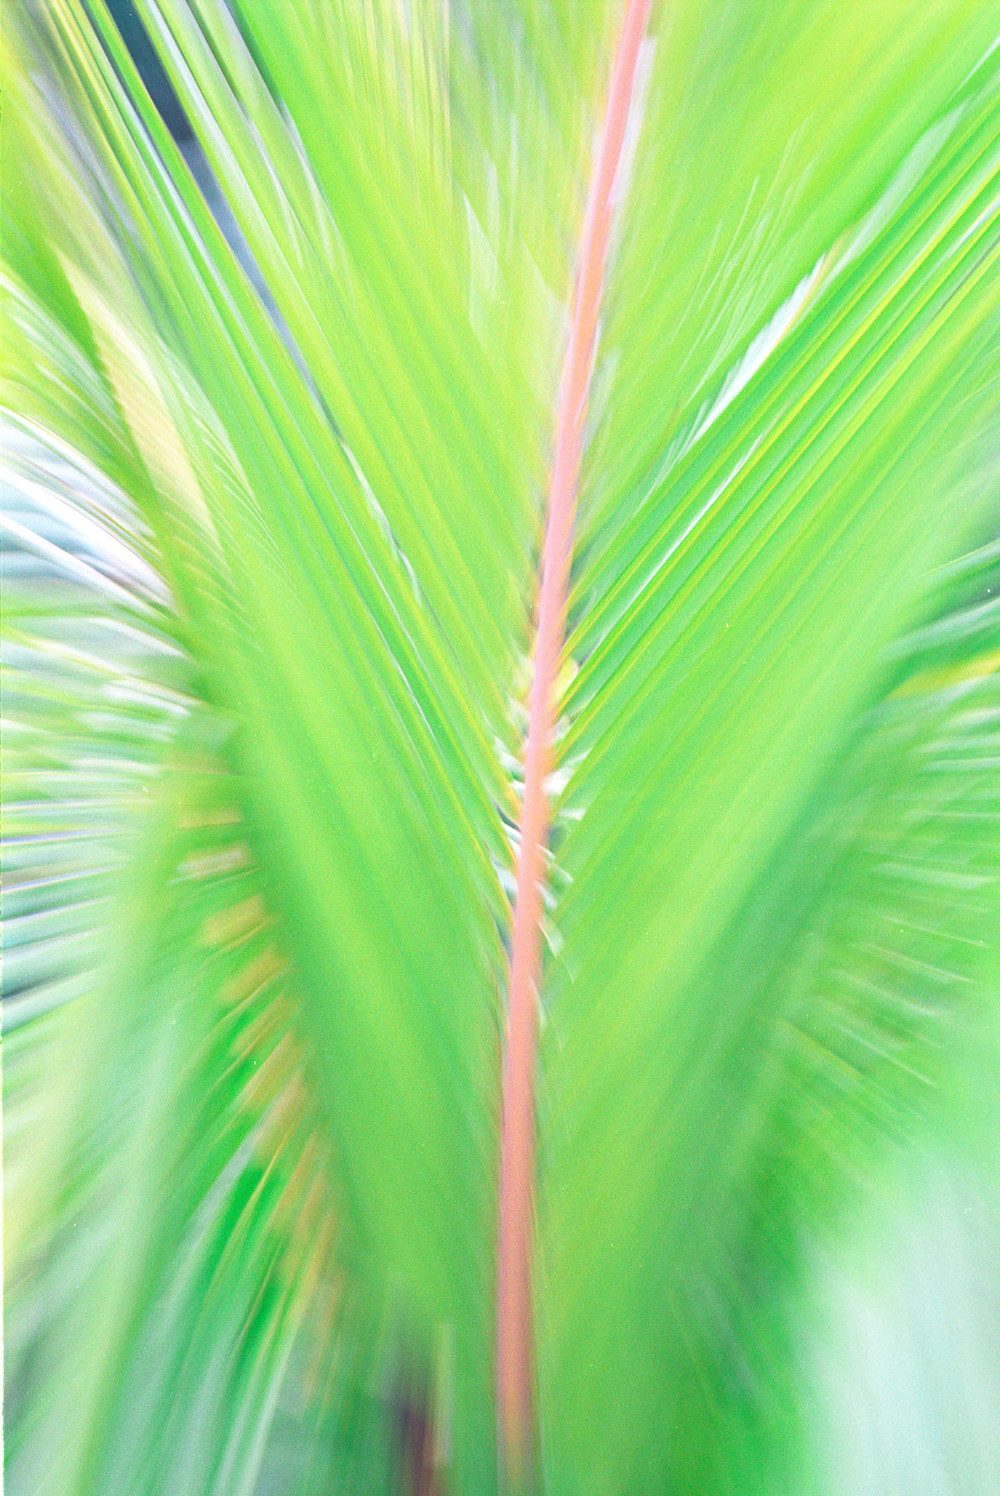 PALM ABSTRACT